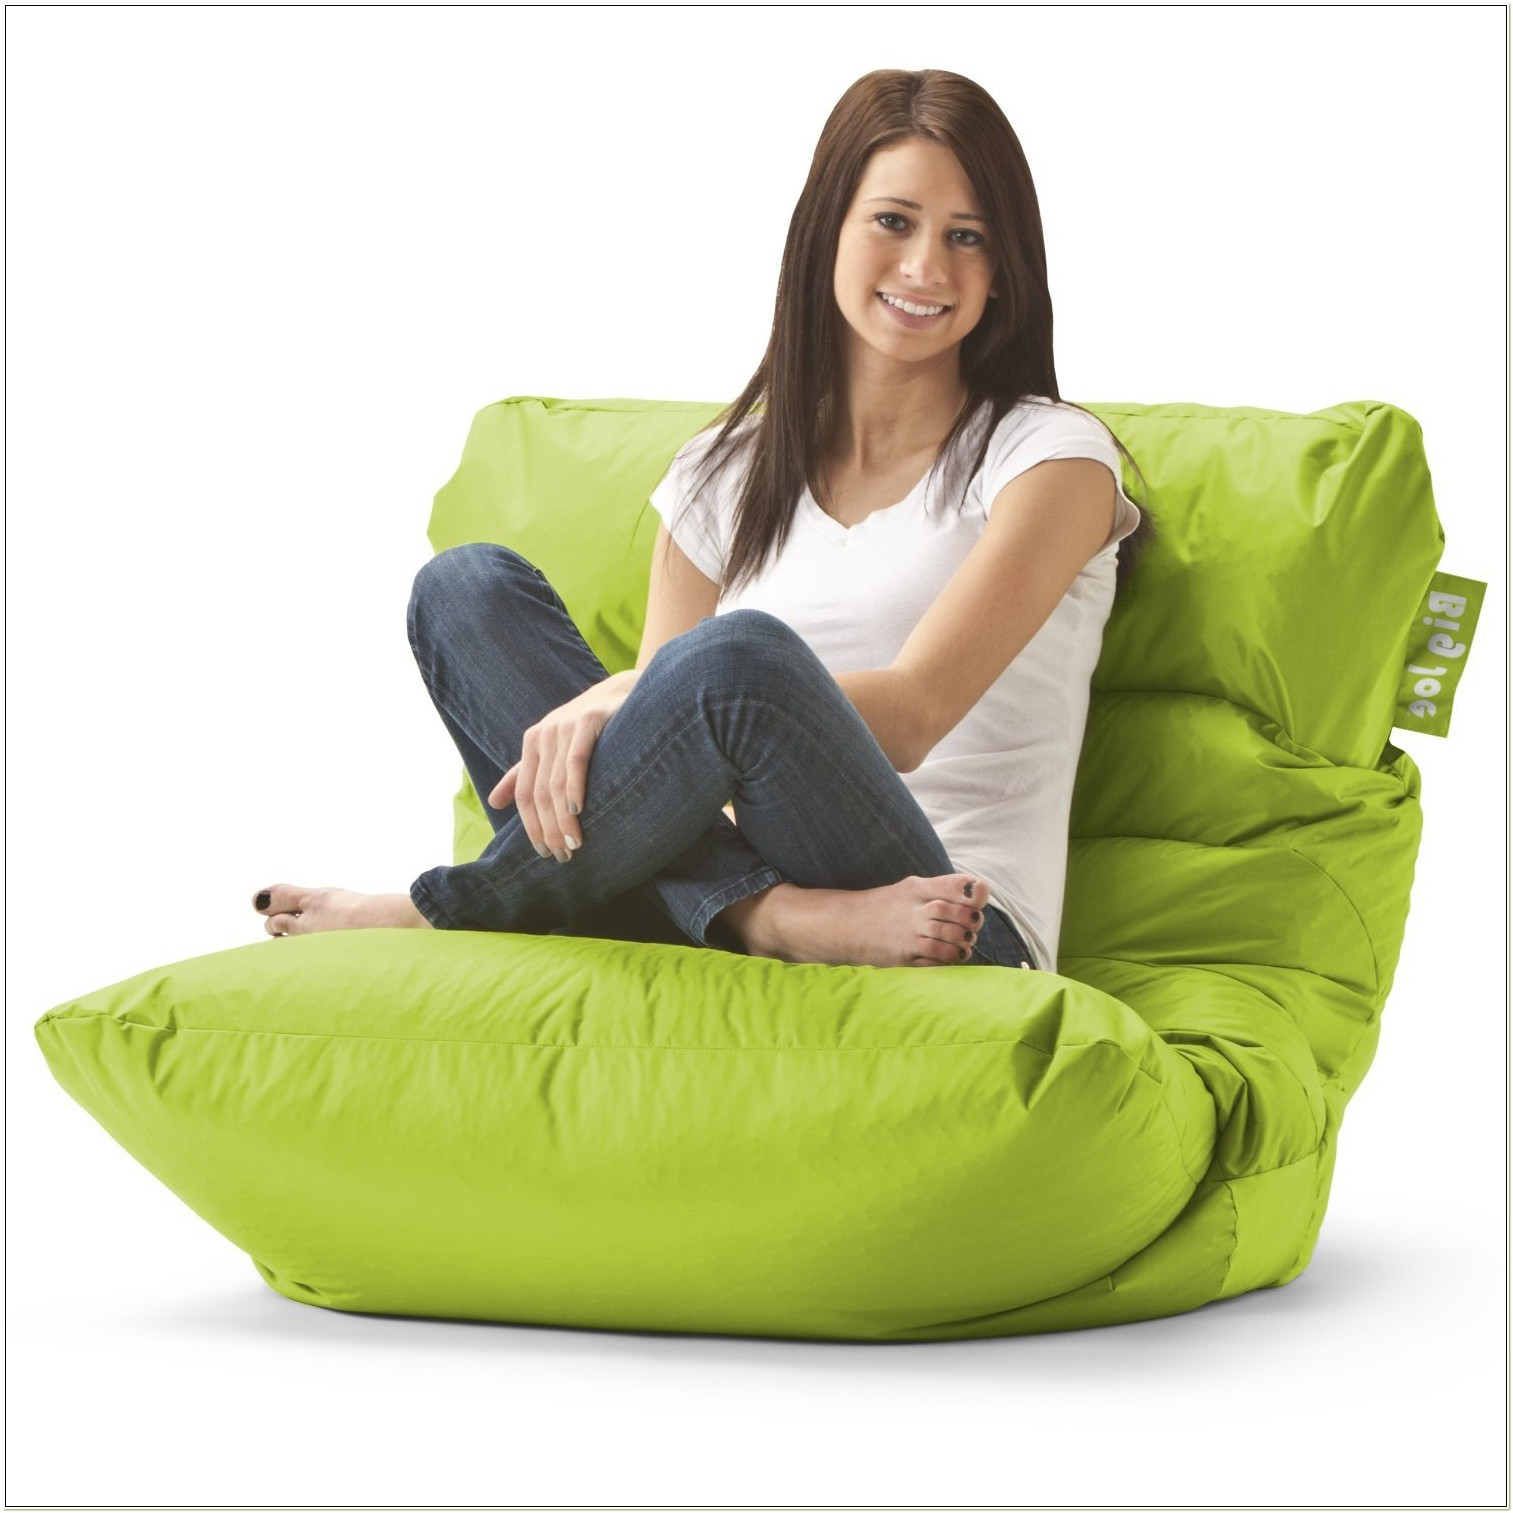 Amazon Corduroy Bean Bag Chair